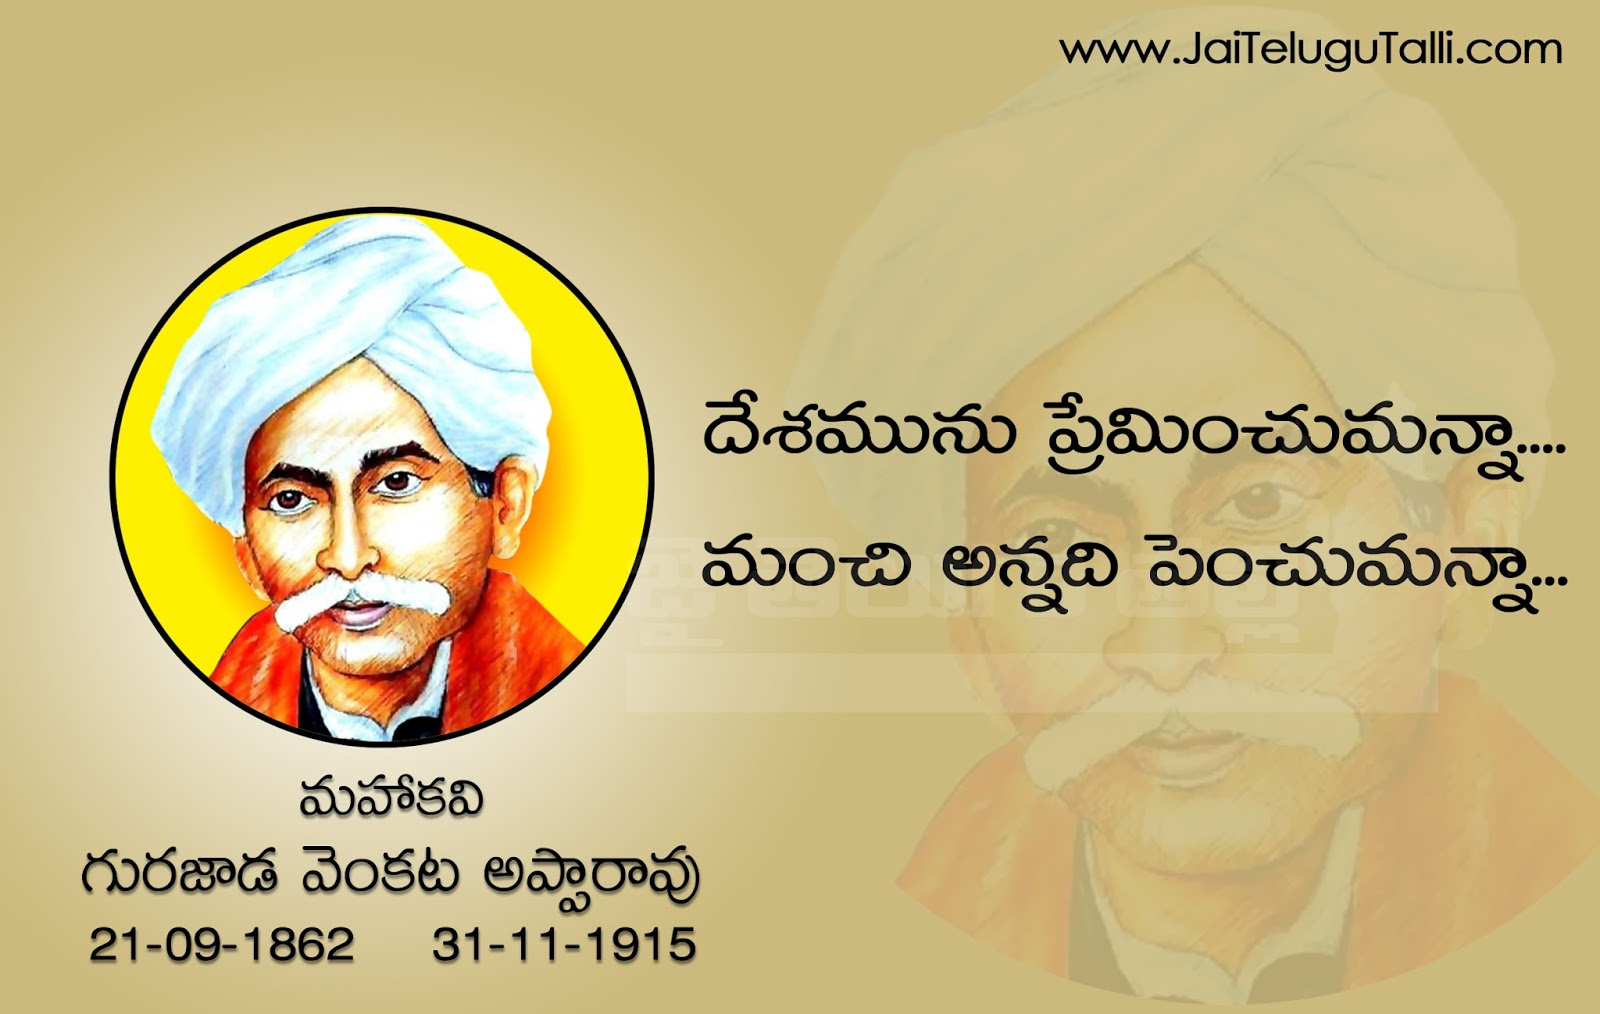 Gurajada Apparao Telugu poems and Quotes with Images | www